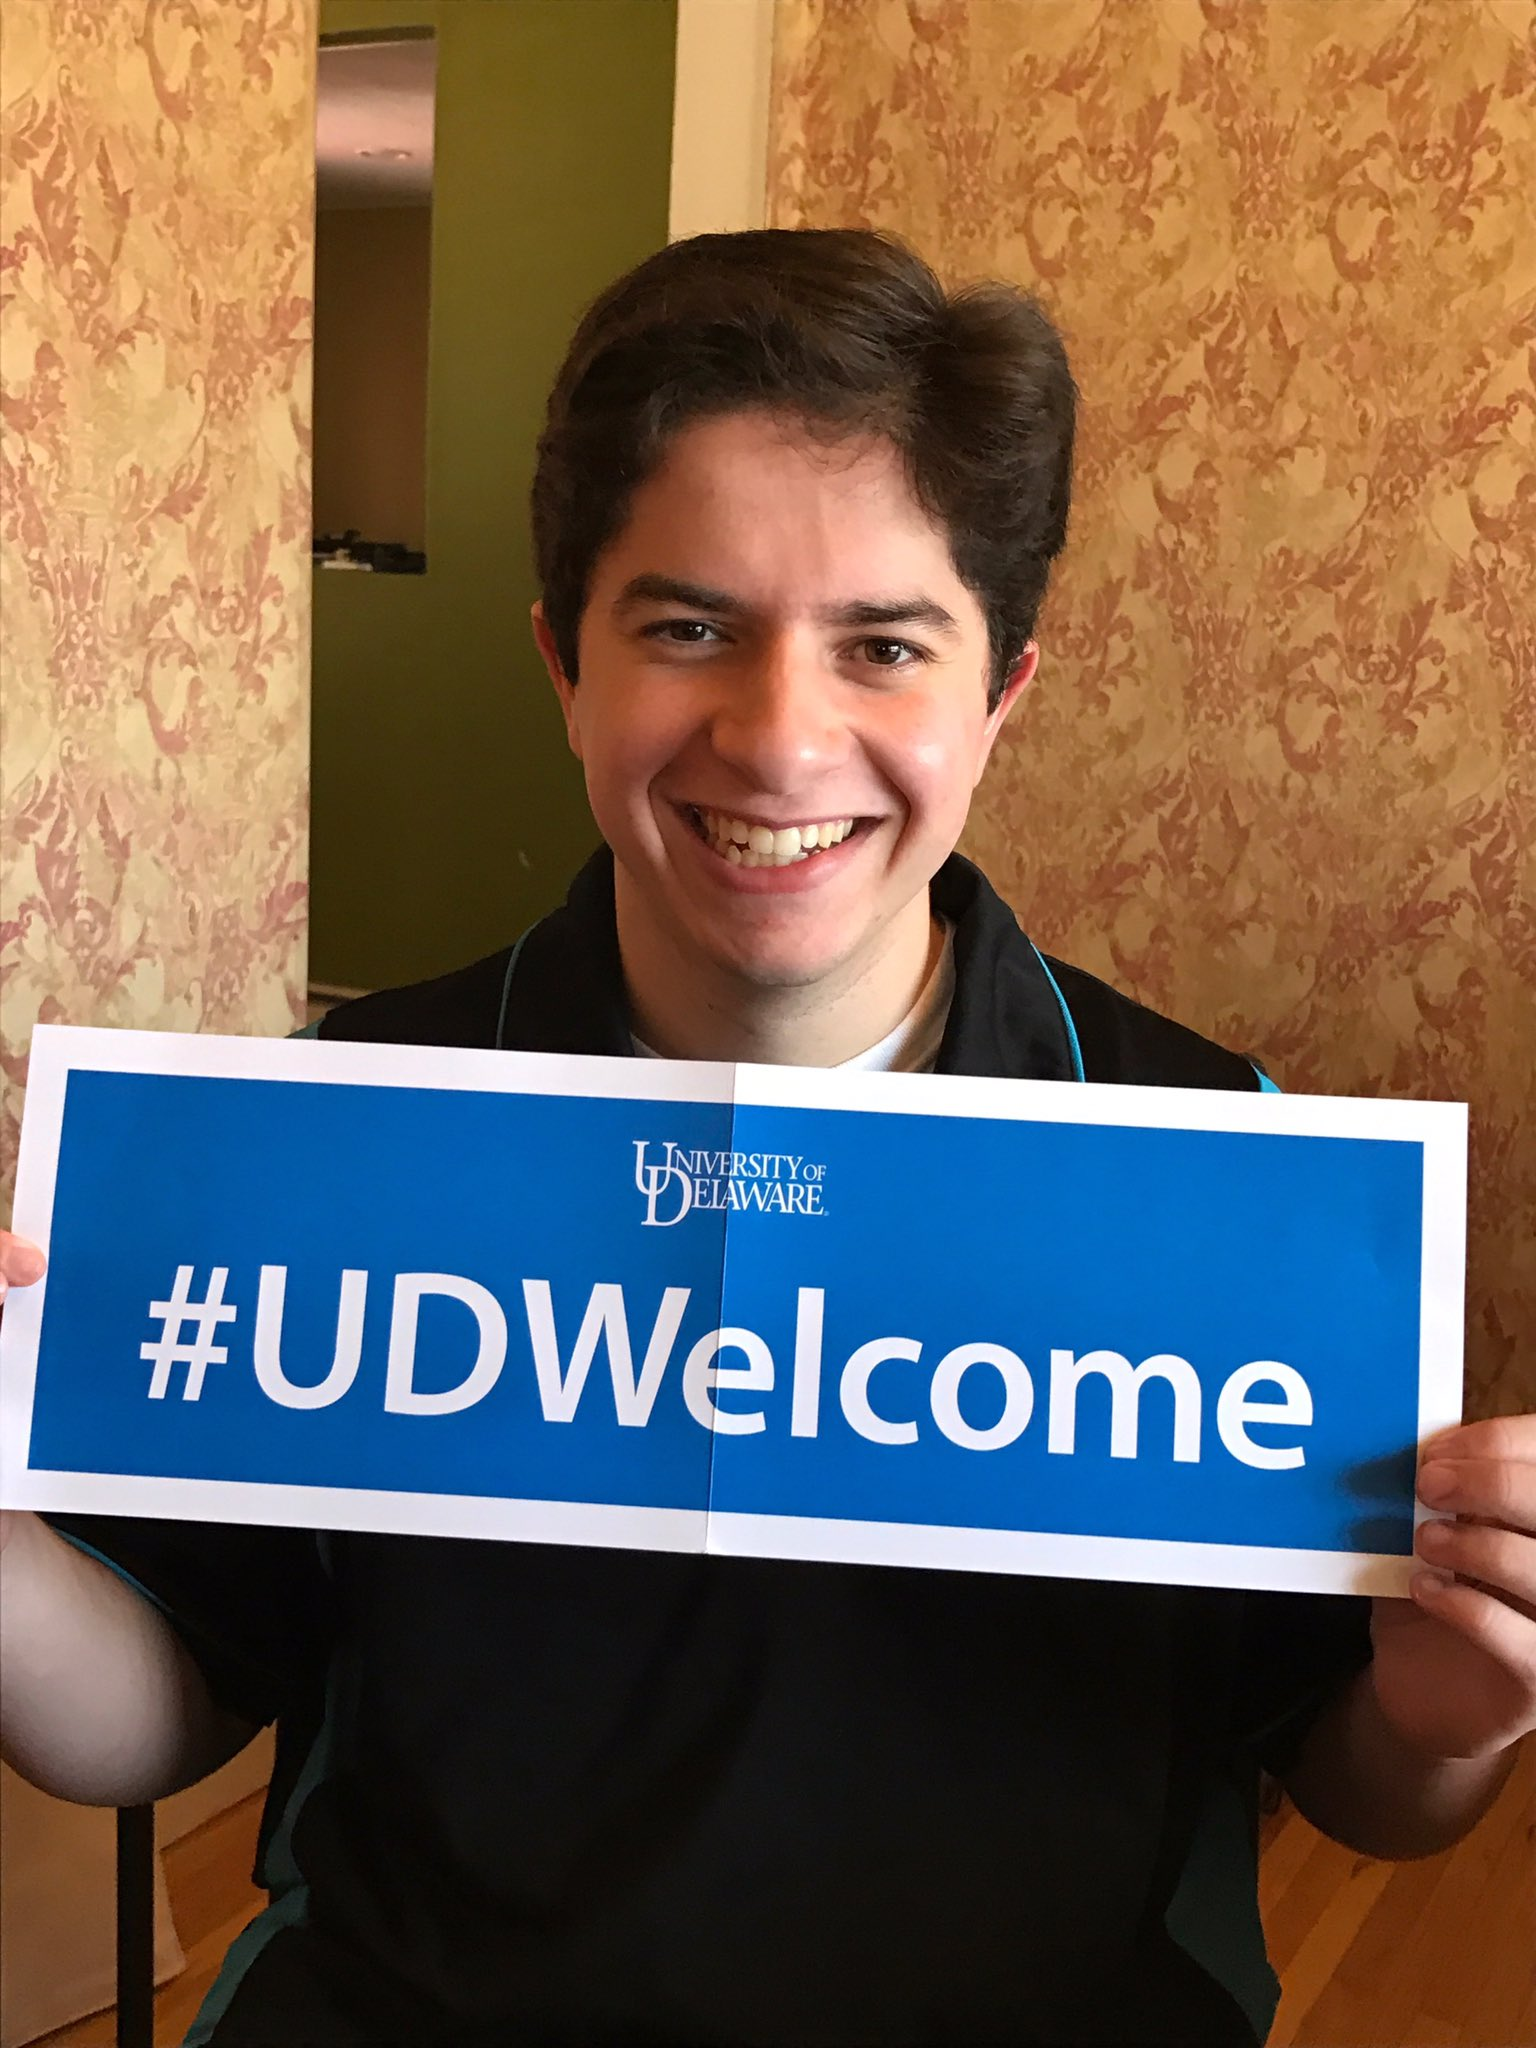 It's official!  Deposit is paid and can't be more proud of the newest Blue Hen!!#UDWelcome #UDel https://t.co/MwwP0EtTuw